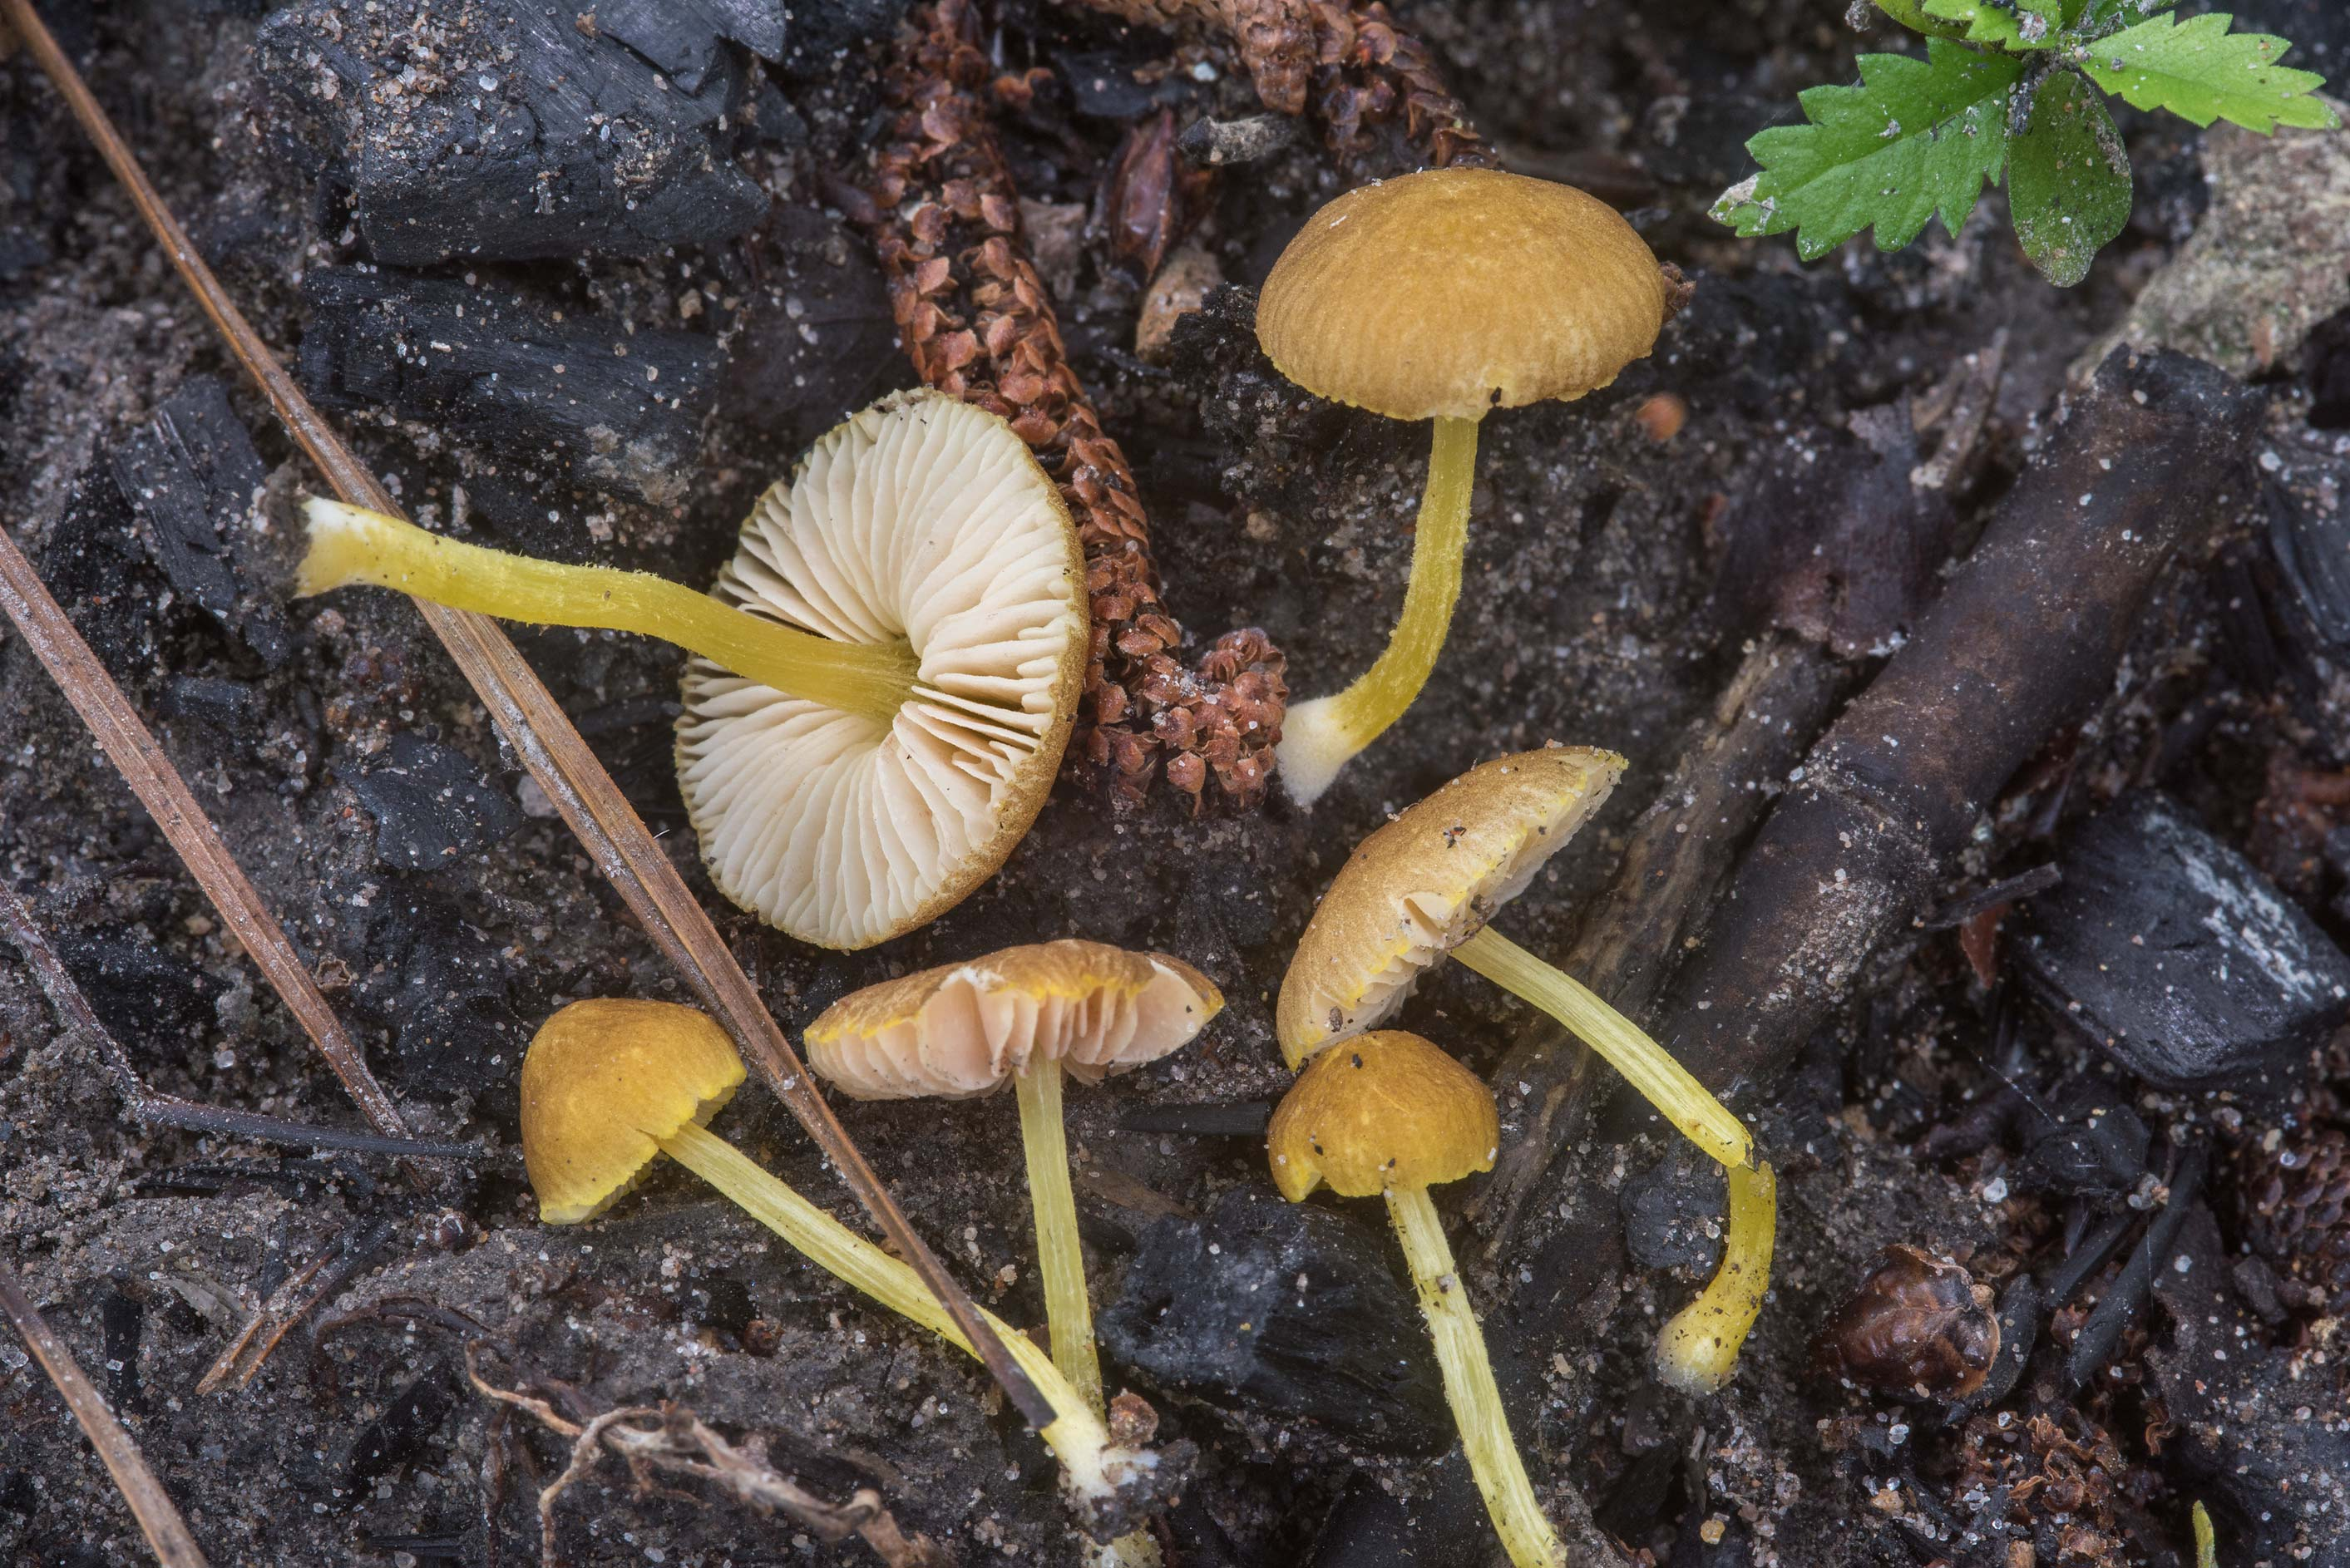 Pluteus chrysophlebius mushrooms growing on...Forest, near Huntsville. Texas